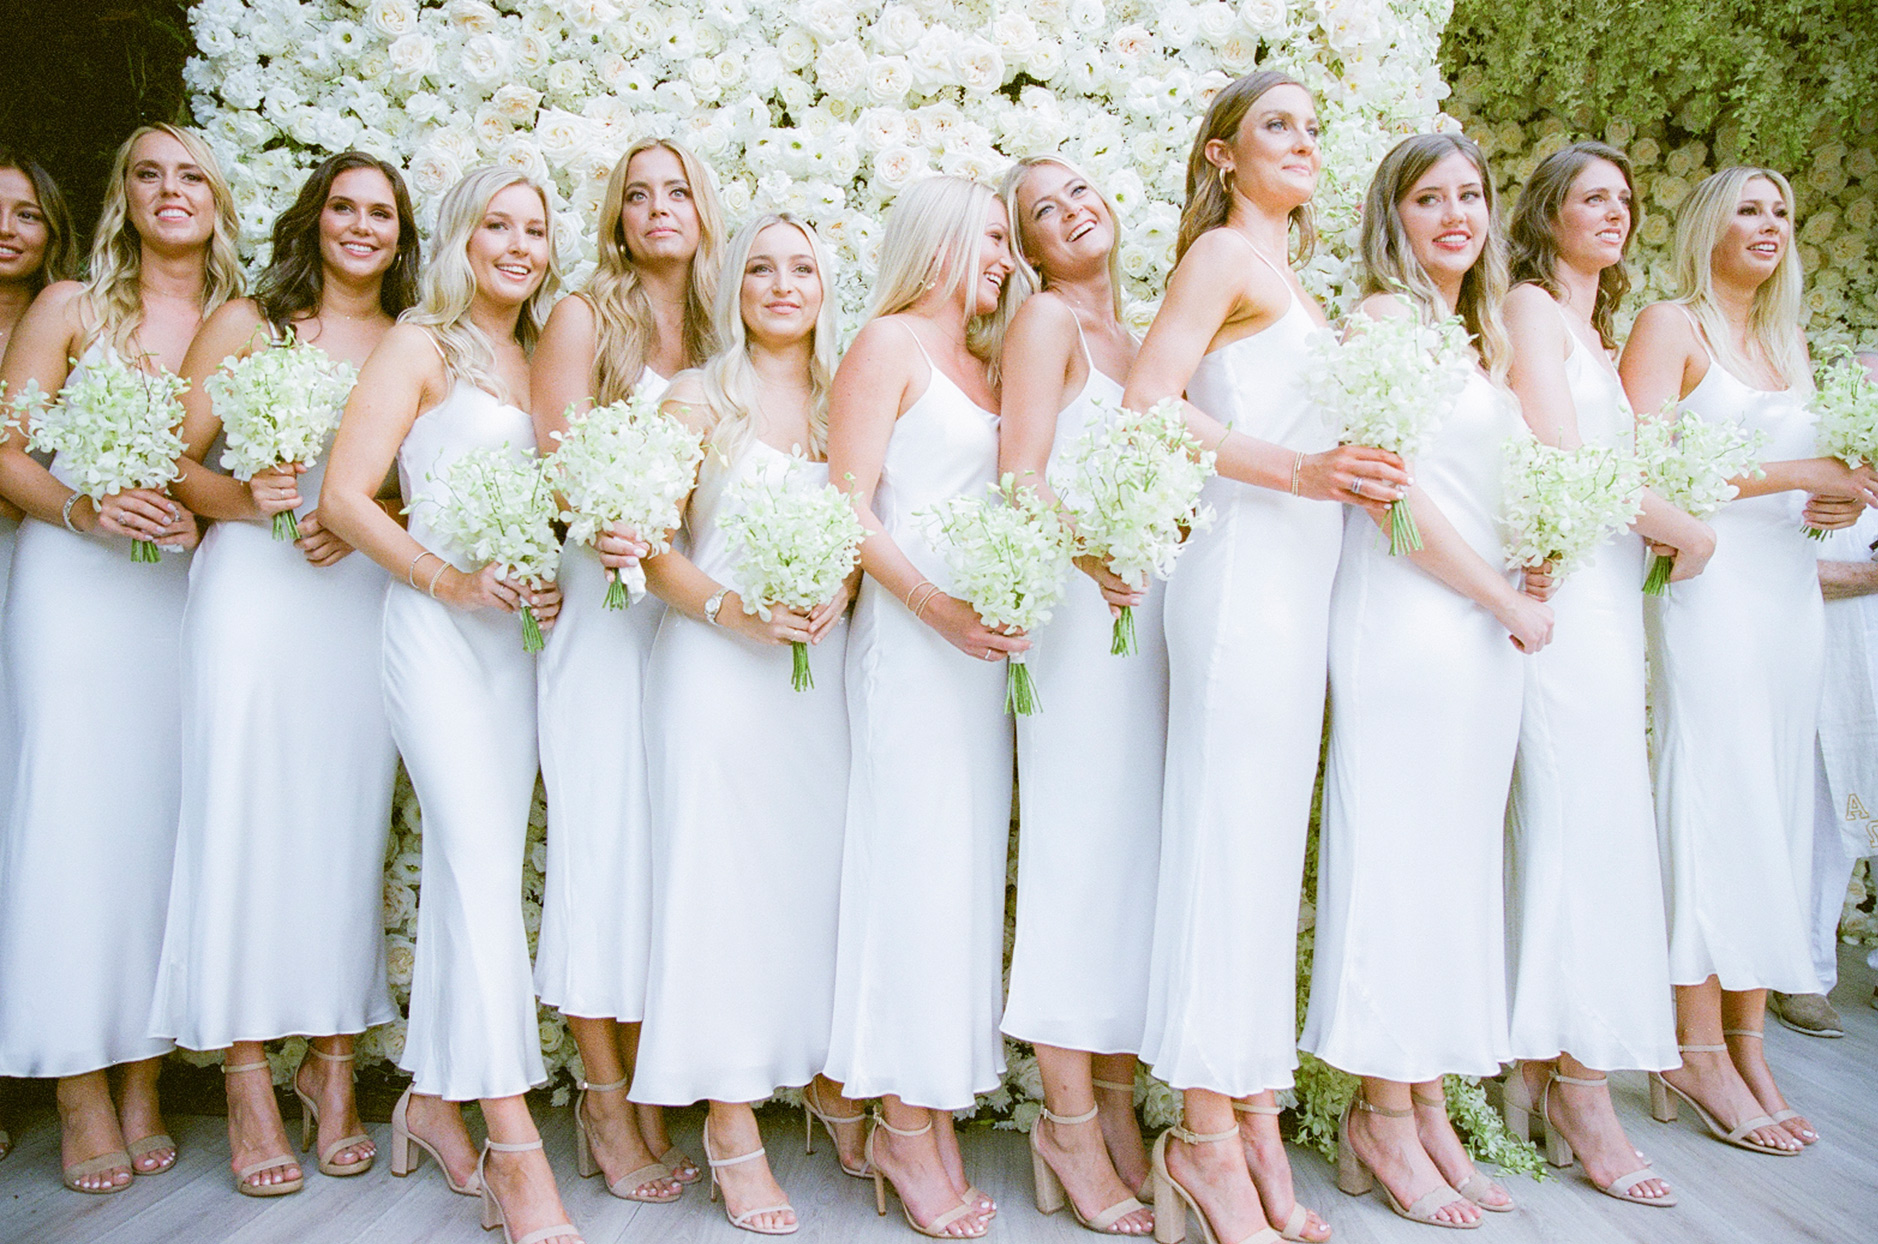 bridesmaids wearing identical ankle length white slip dresses